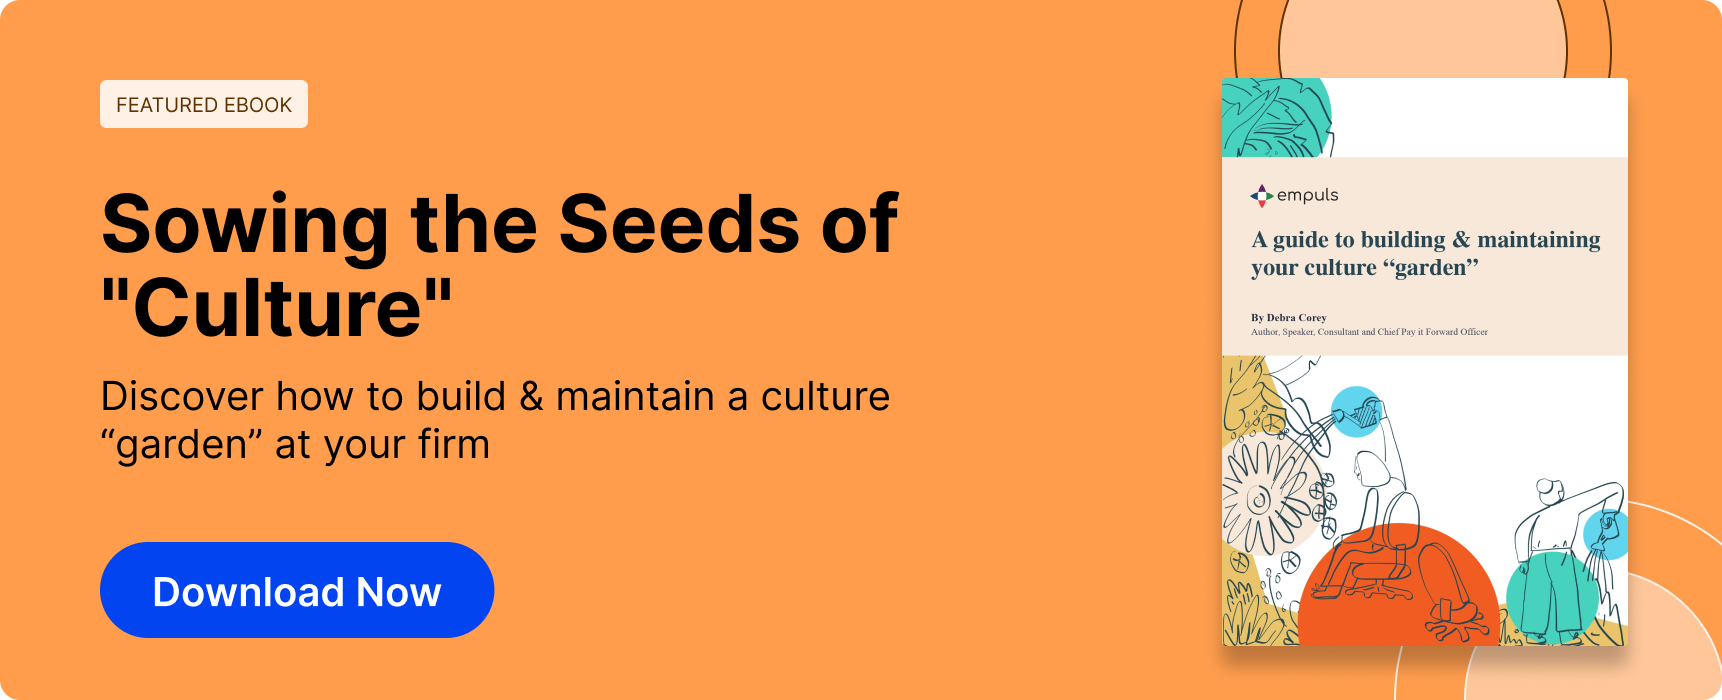 DOWNLOAD THE GUIDE TO BUILDING ORGANIZATIONAL CULTURE